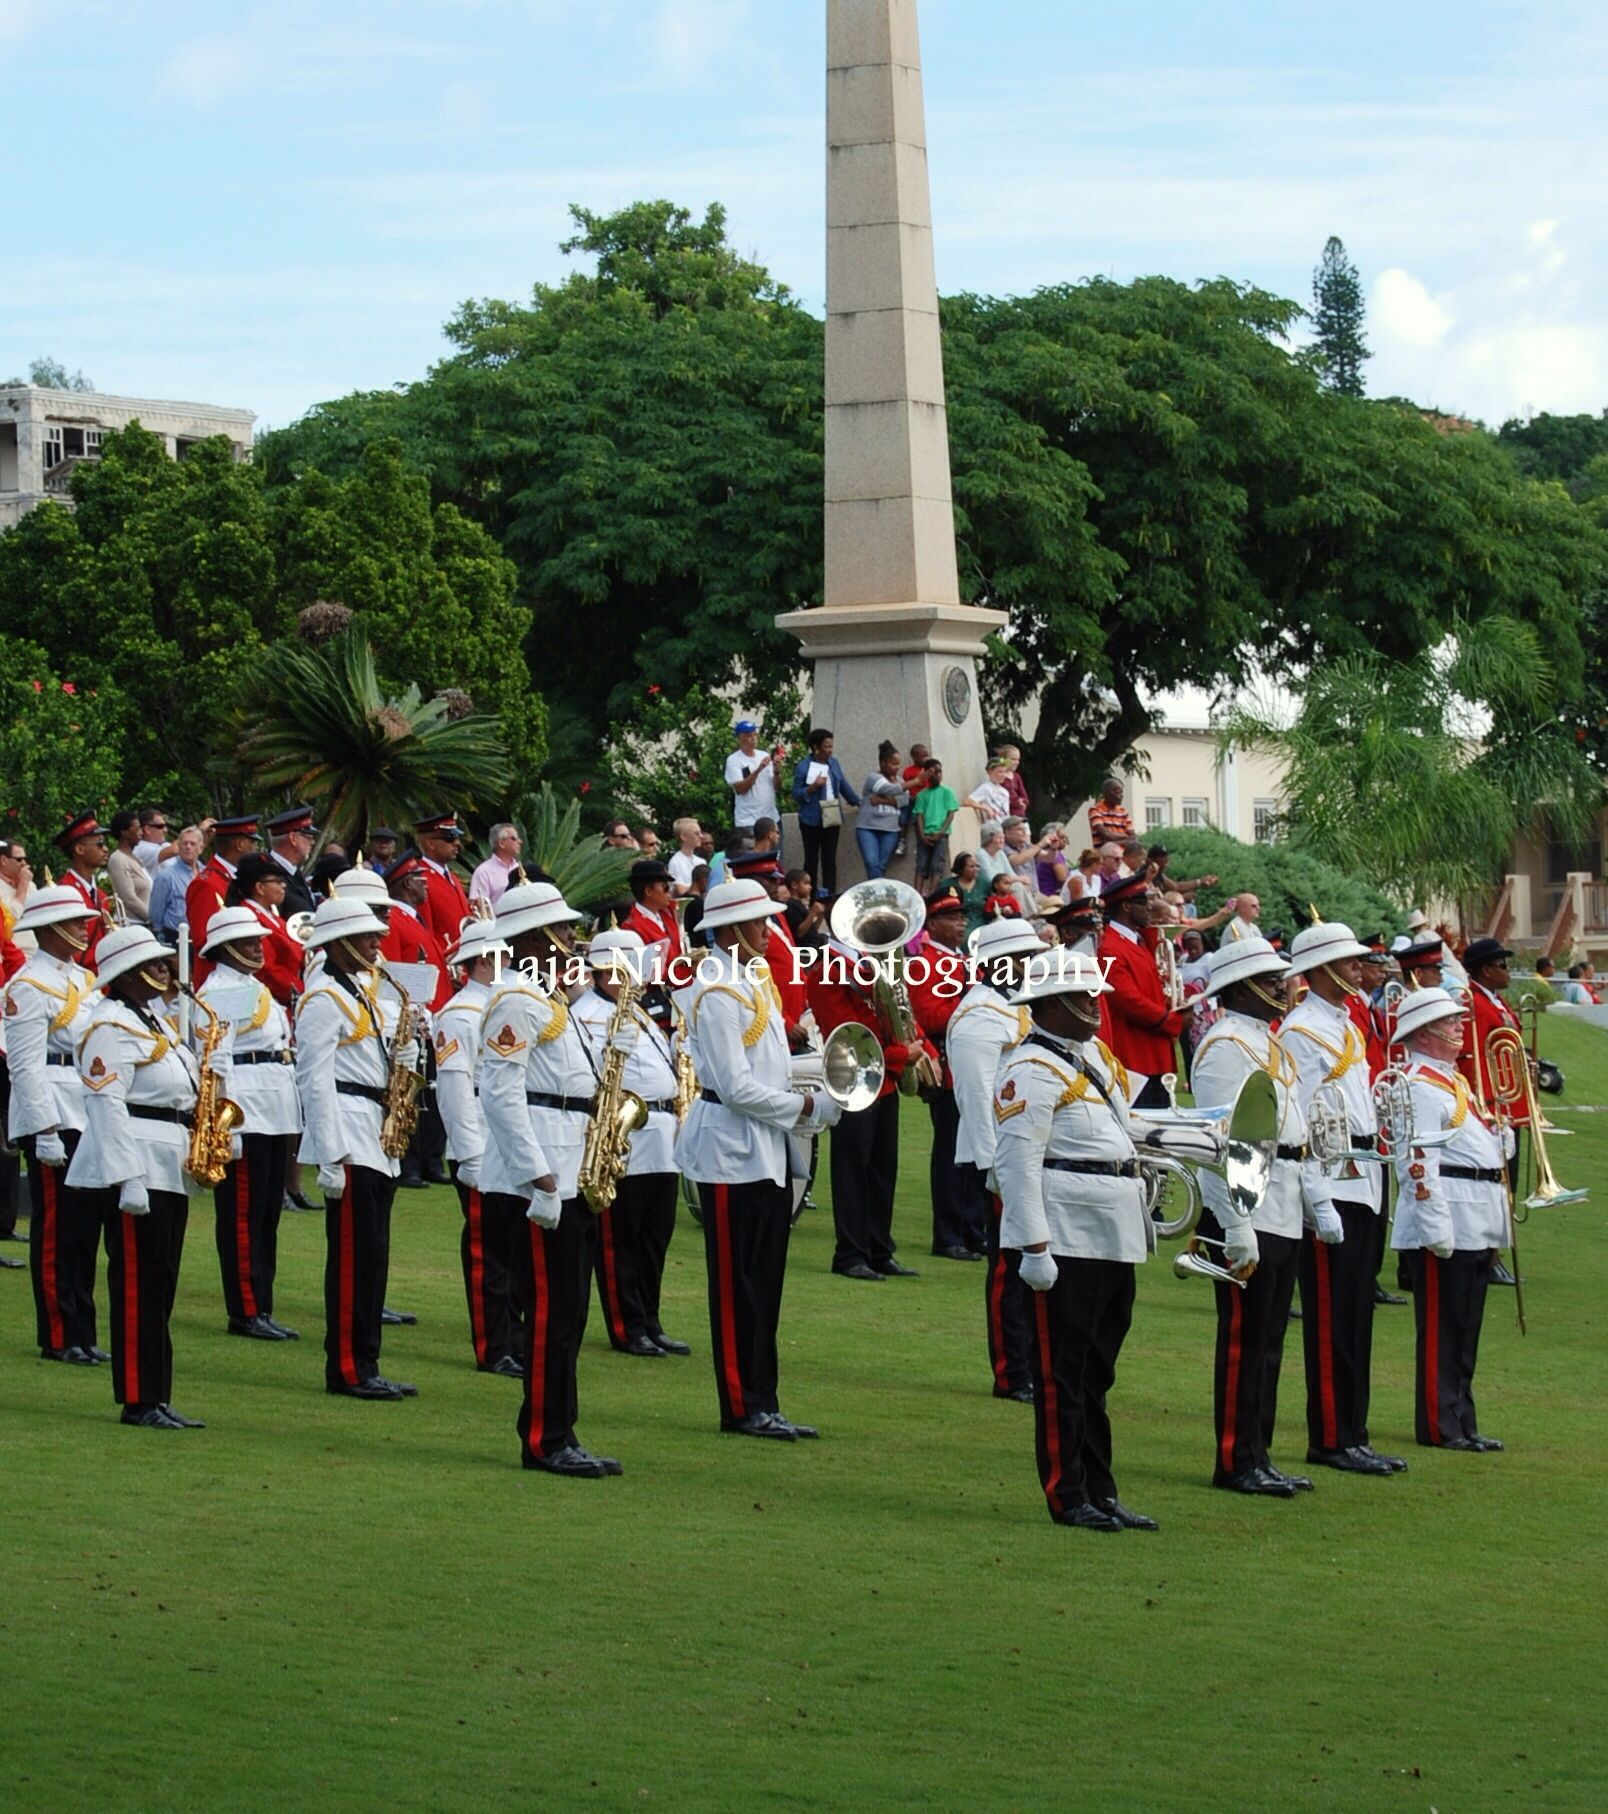 Remembrance Day Parade #Bermuda #photography Photo credit: Taja Nicole Photography